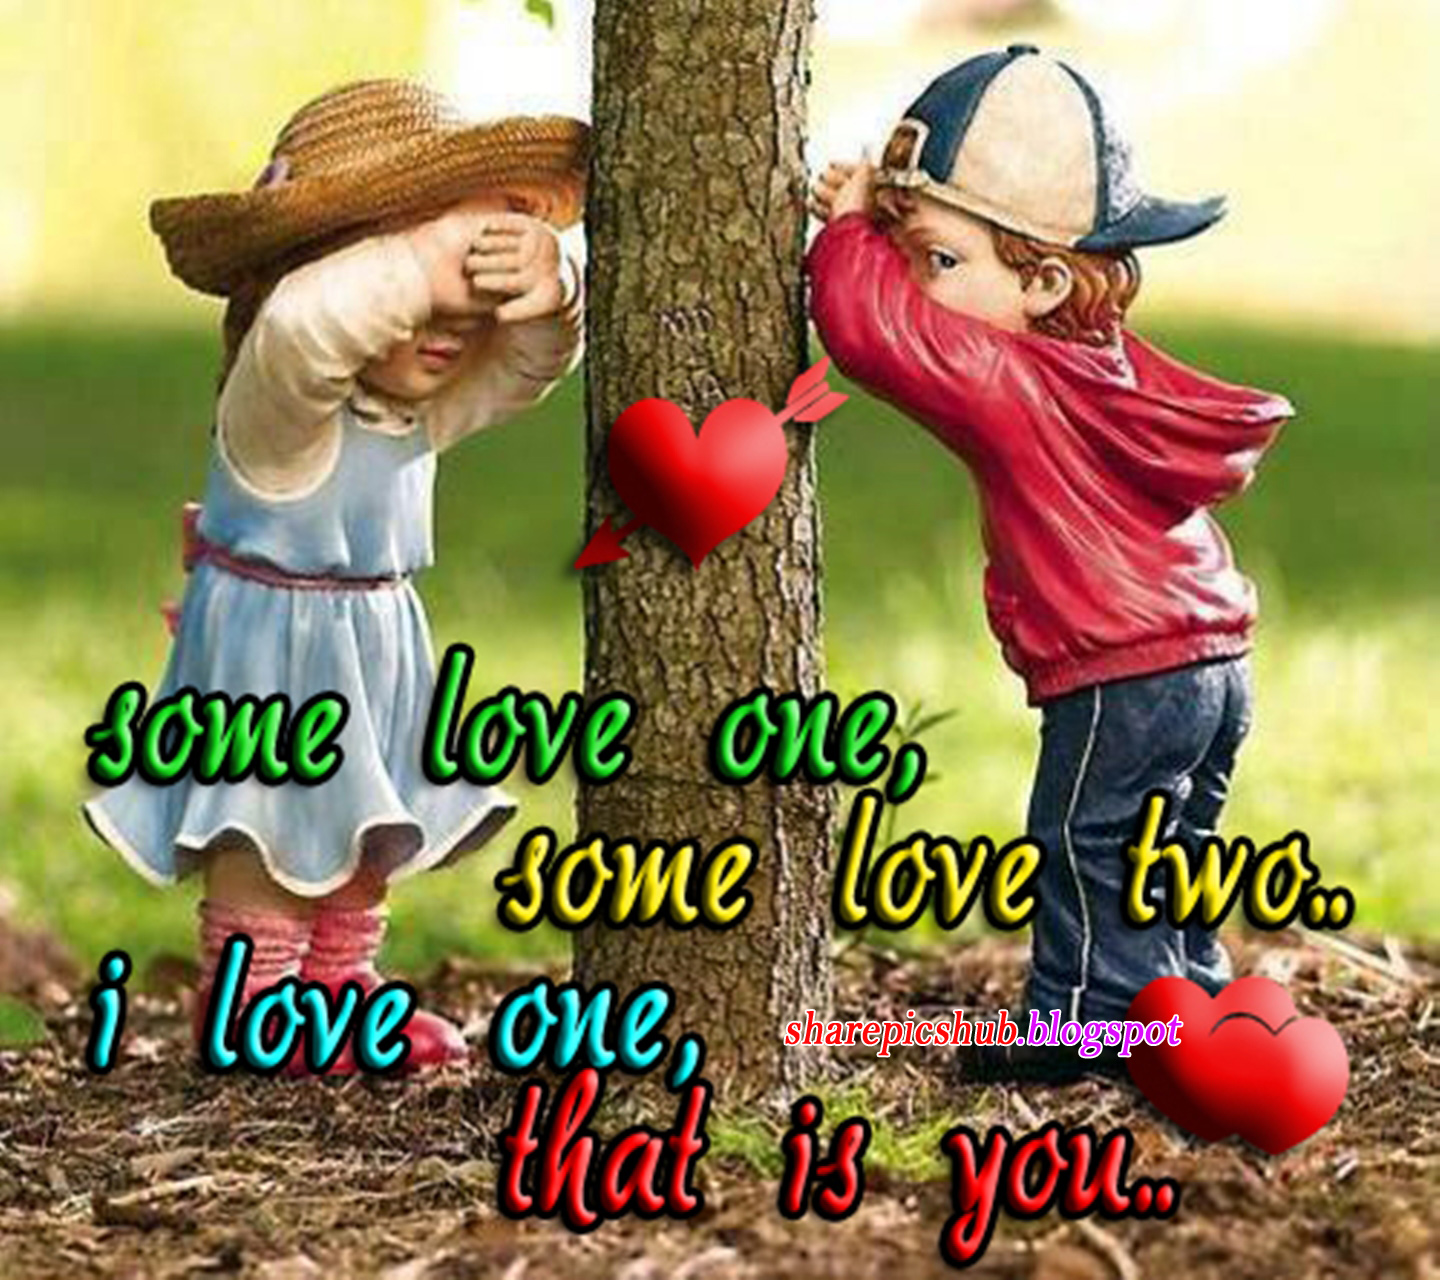 Fantastic Wallpaper Couple Android Phone - i-love-just-you-romantic-quote-pics76545  Best Photo Reference_413214 .com/-YoNfNR-6fHw/UYur2OQEytI/AAAAAAAAB0c/y_ylVGBcmyY/s1600/i-love-just-you-romantic-quote-pics76545